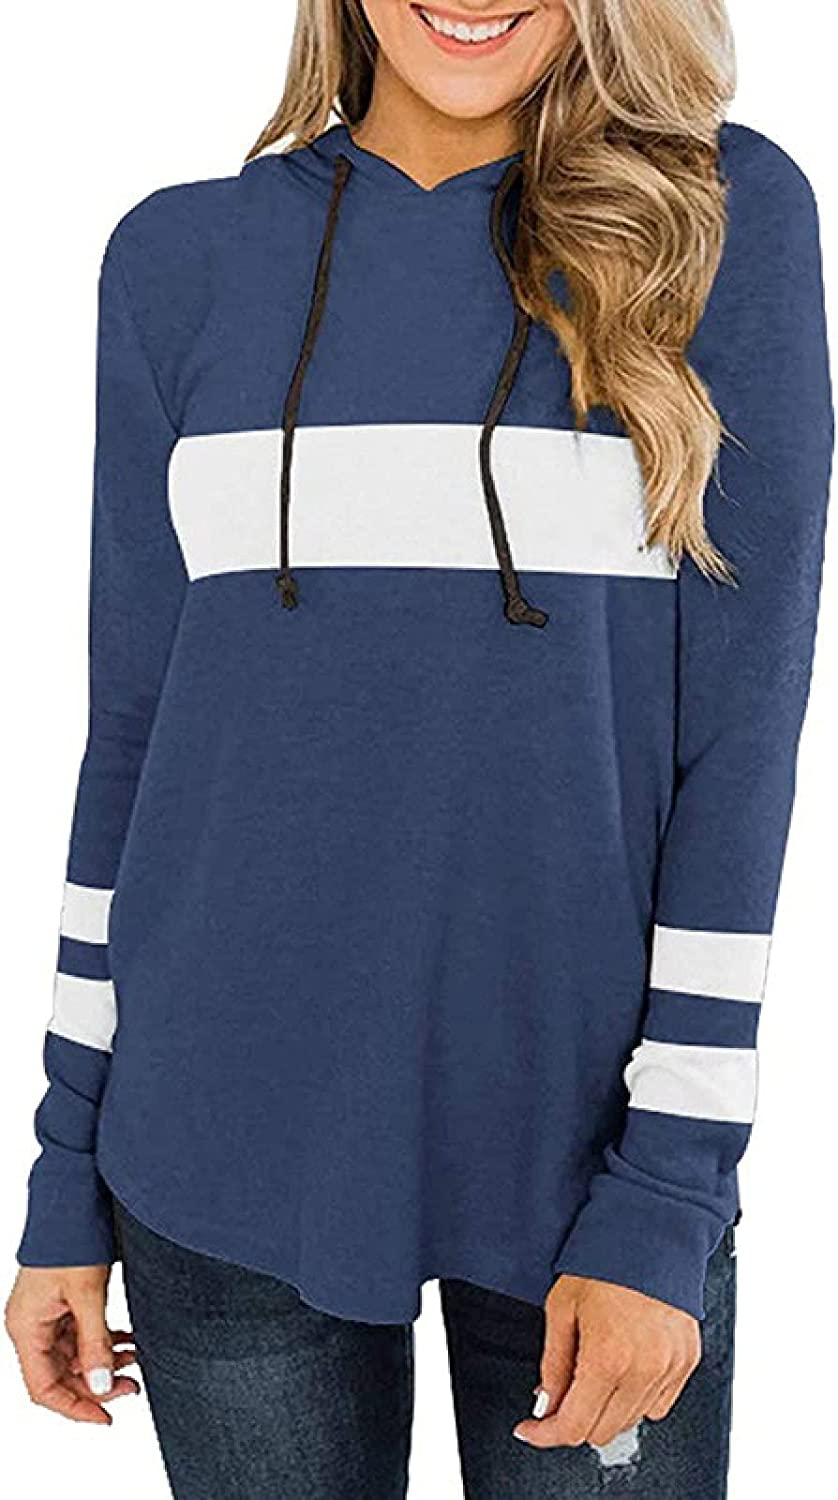 Women's Hooded Pullover Casual Color Block Sweatshirts Long Sleeve Side Split High Low Tunic Top